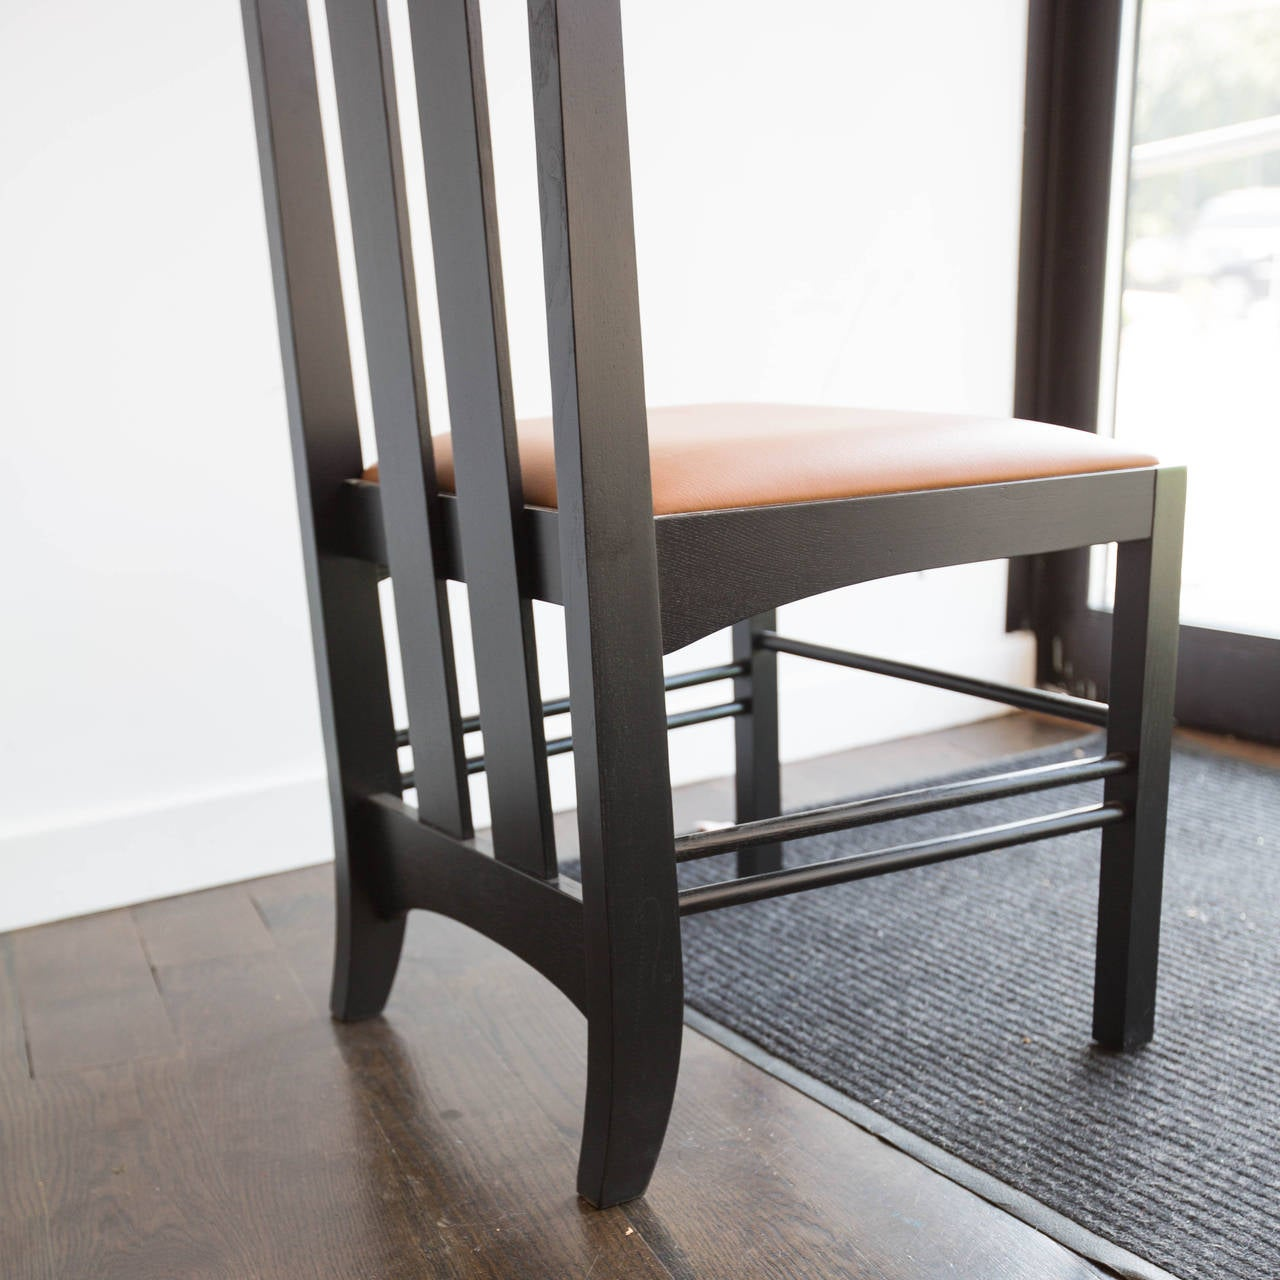 charles rennie mackintosh ingram chair by cassina at 1stdibs. Black Bedroom Furniture Sets. Home Design Ideas